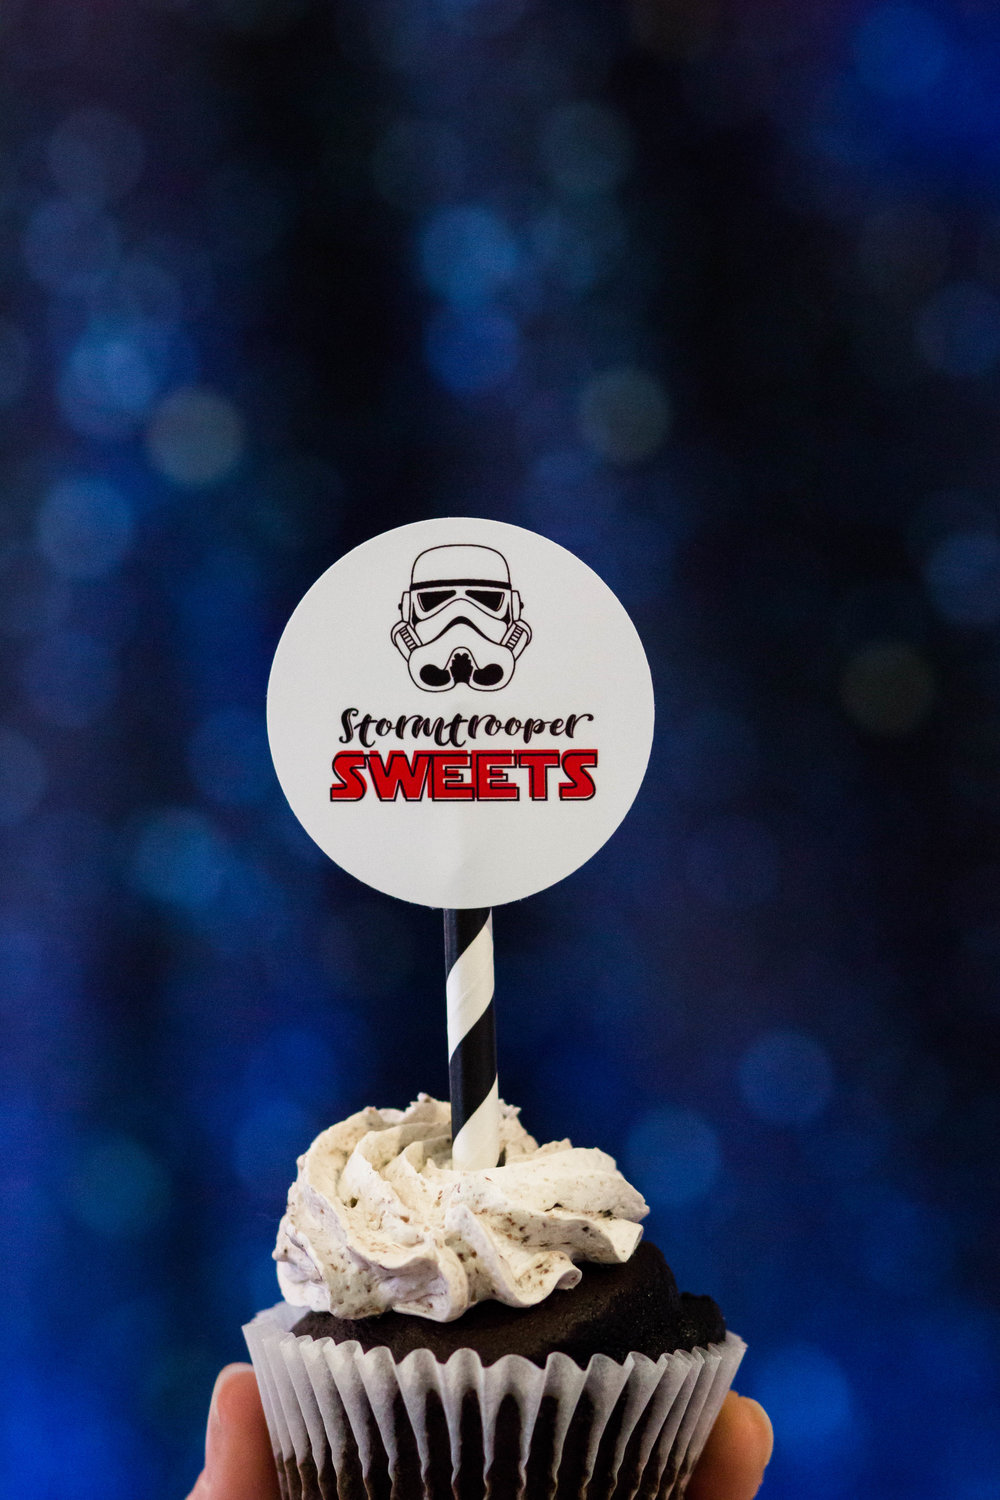 Stormtrooper Cupcakes at a Star Wars Birthday party // printables from shopmkkm.com